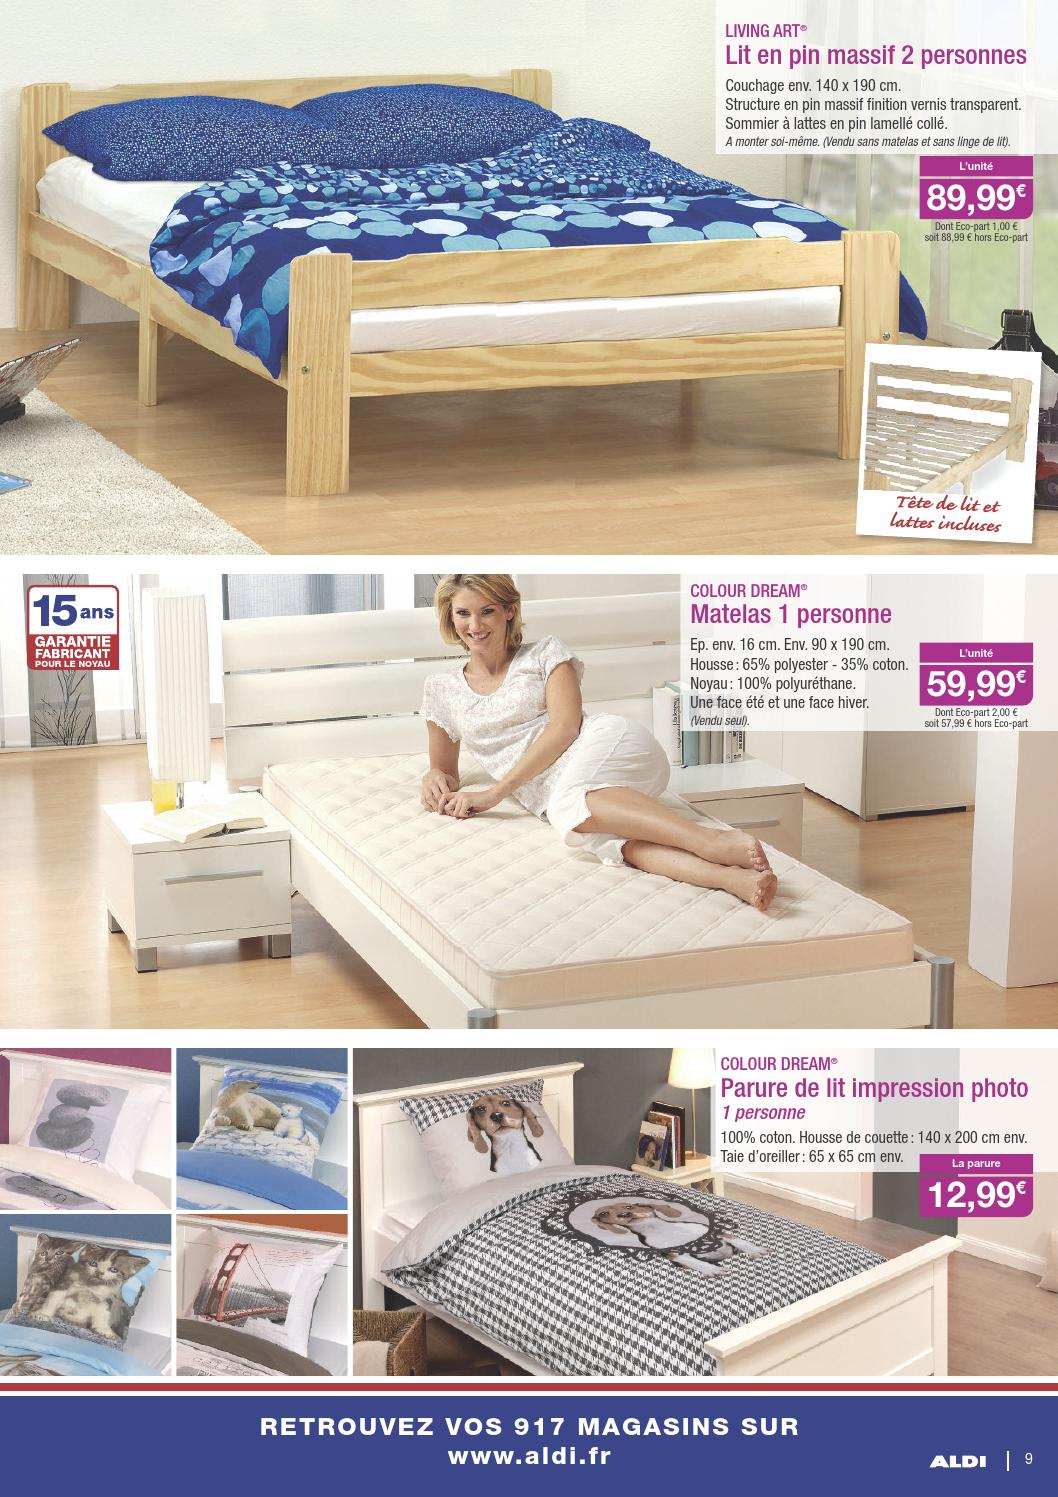 aldi actualites en vente le 07 09 2013 by proomo france issuu. Black Bedroom Furniture Sets. Home Design Ideas